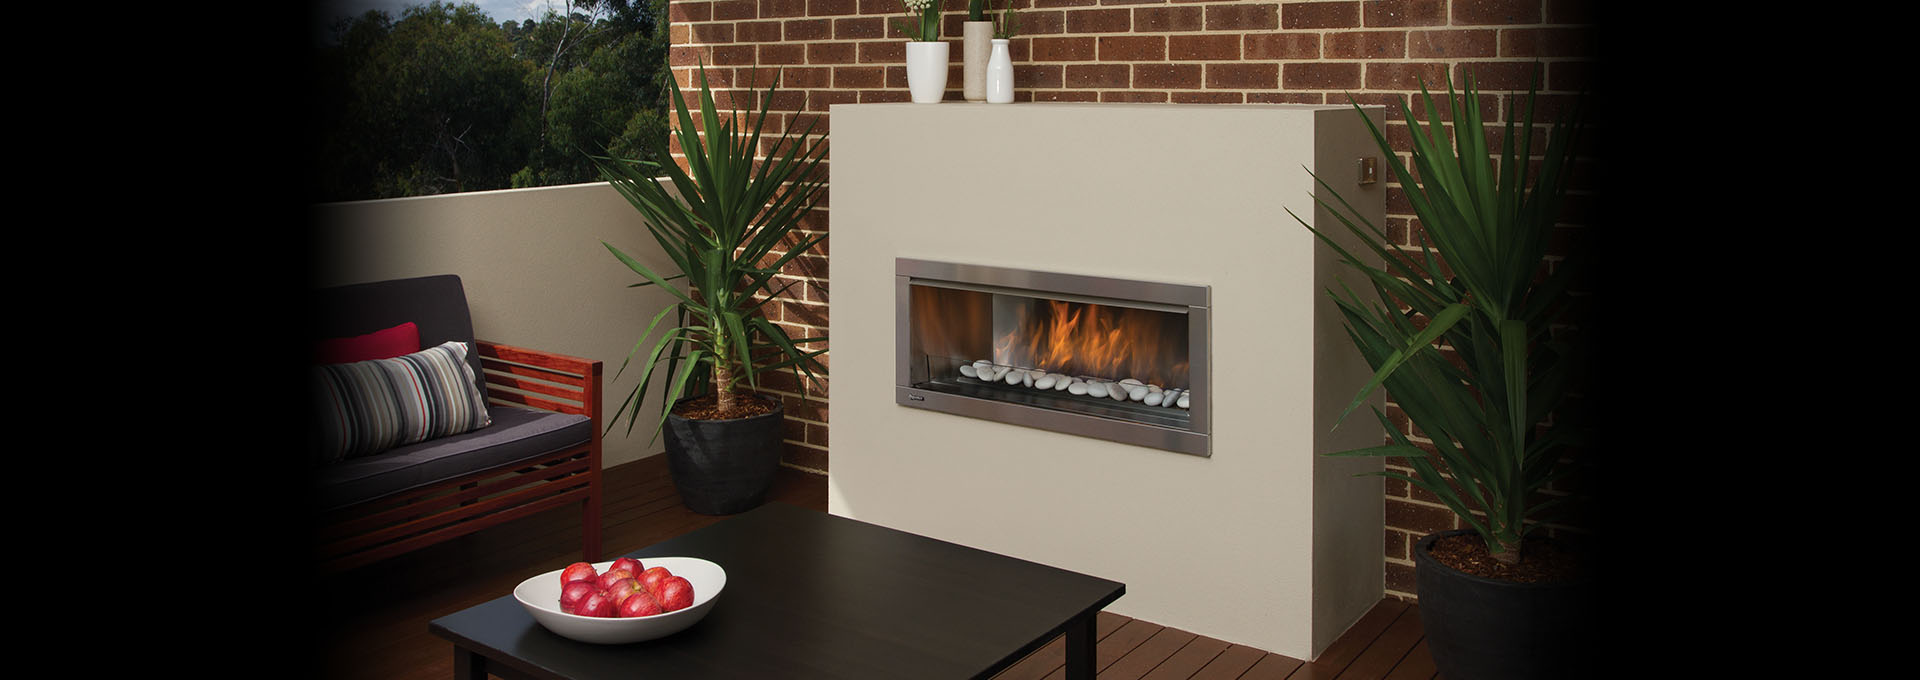 outdoor gas fireplace kit. Regency Horizon Outdoor Gas Fireplace shown with volcanic stones and steel  framing kit HZO42 Modern Fireplaces